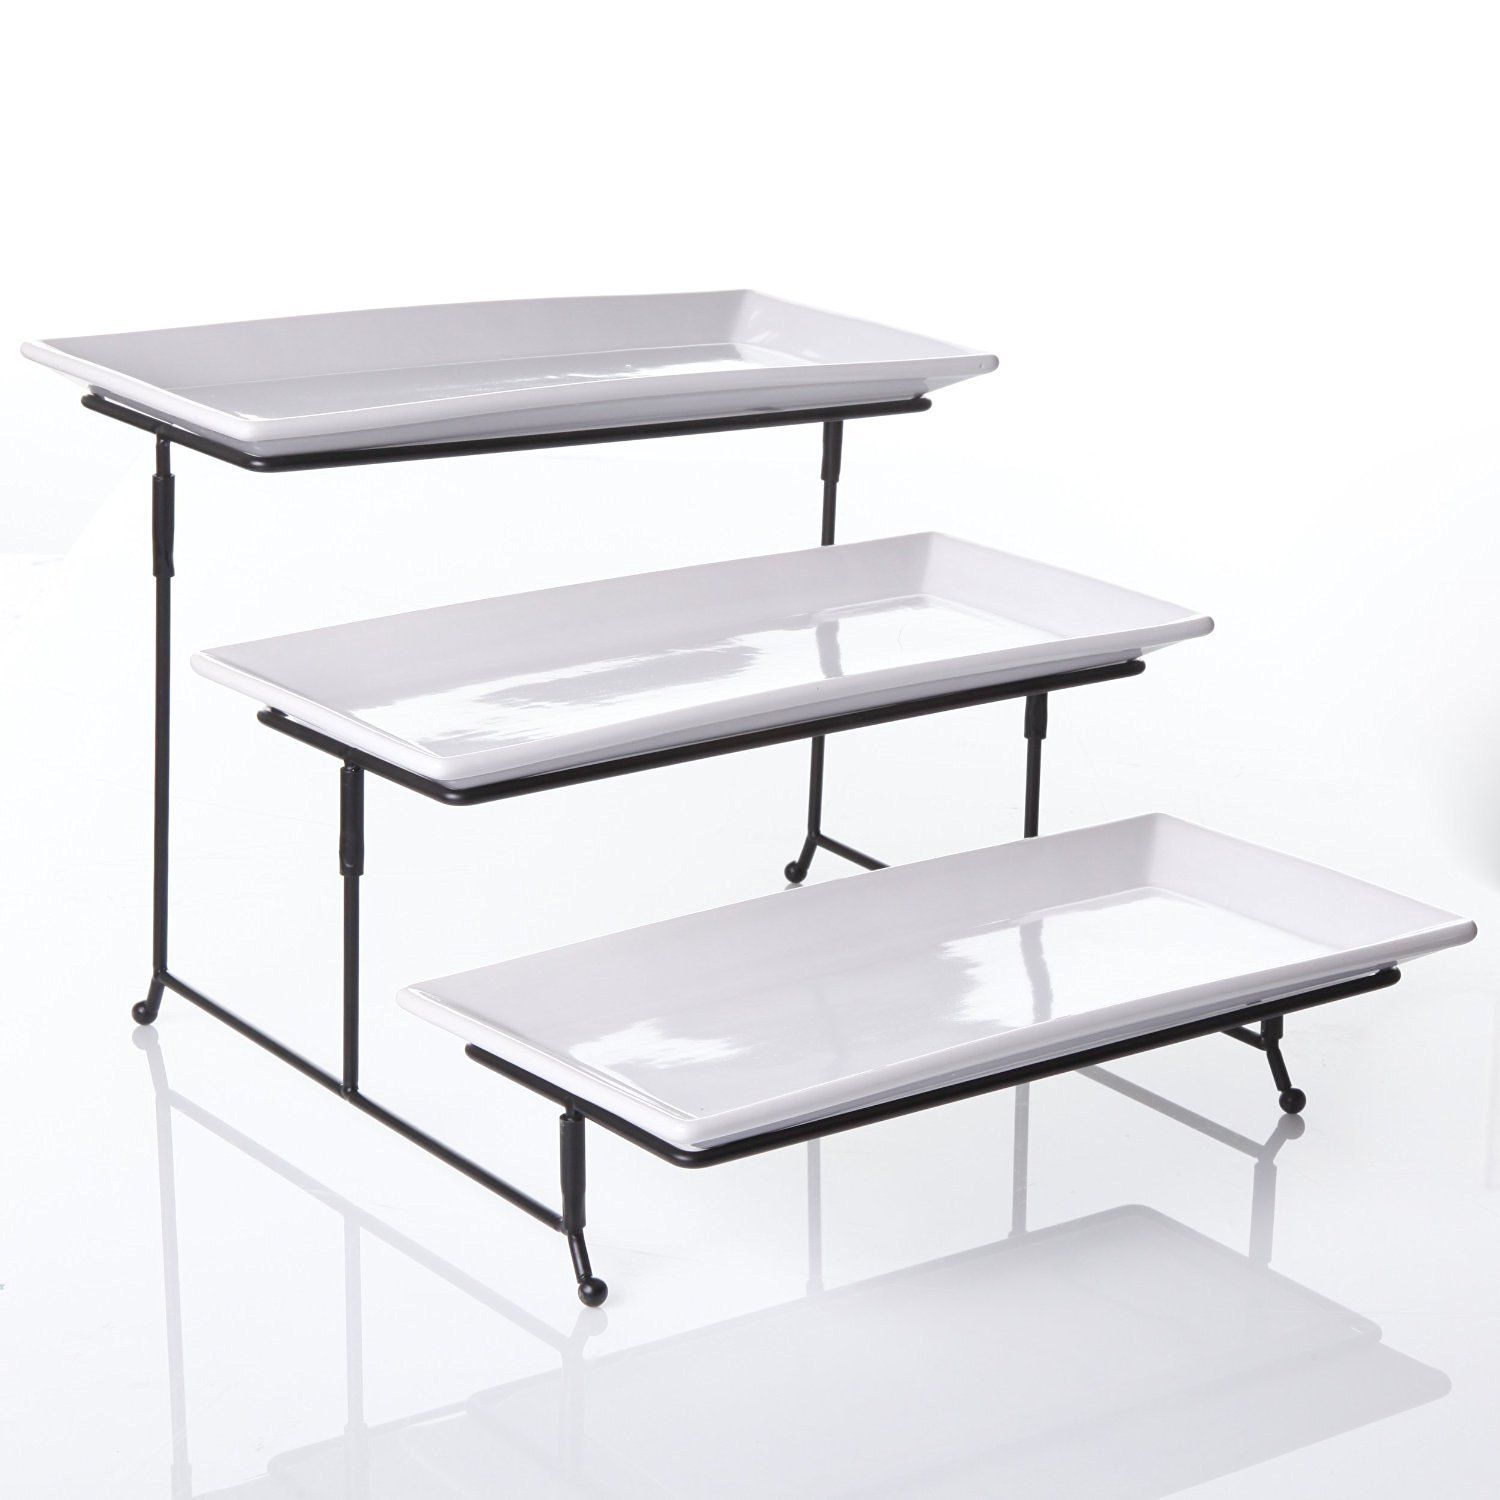 3 Tier Rectangular Serving Platter Three Tiered Cake Tray Stand Food Server Display Plate Rack Travessas De Servir Utensilios De Cozinha Organizacao Da Casa